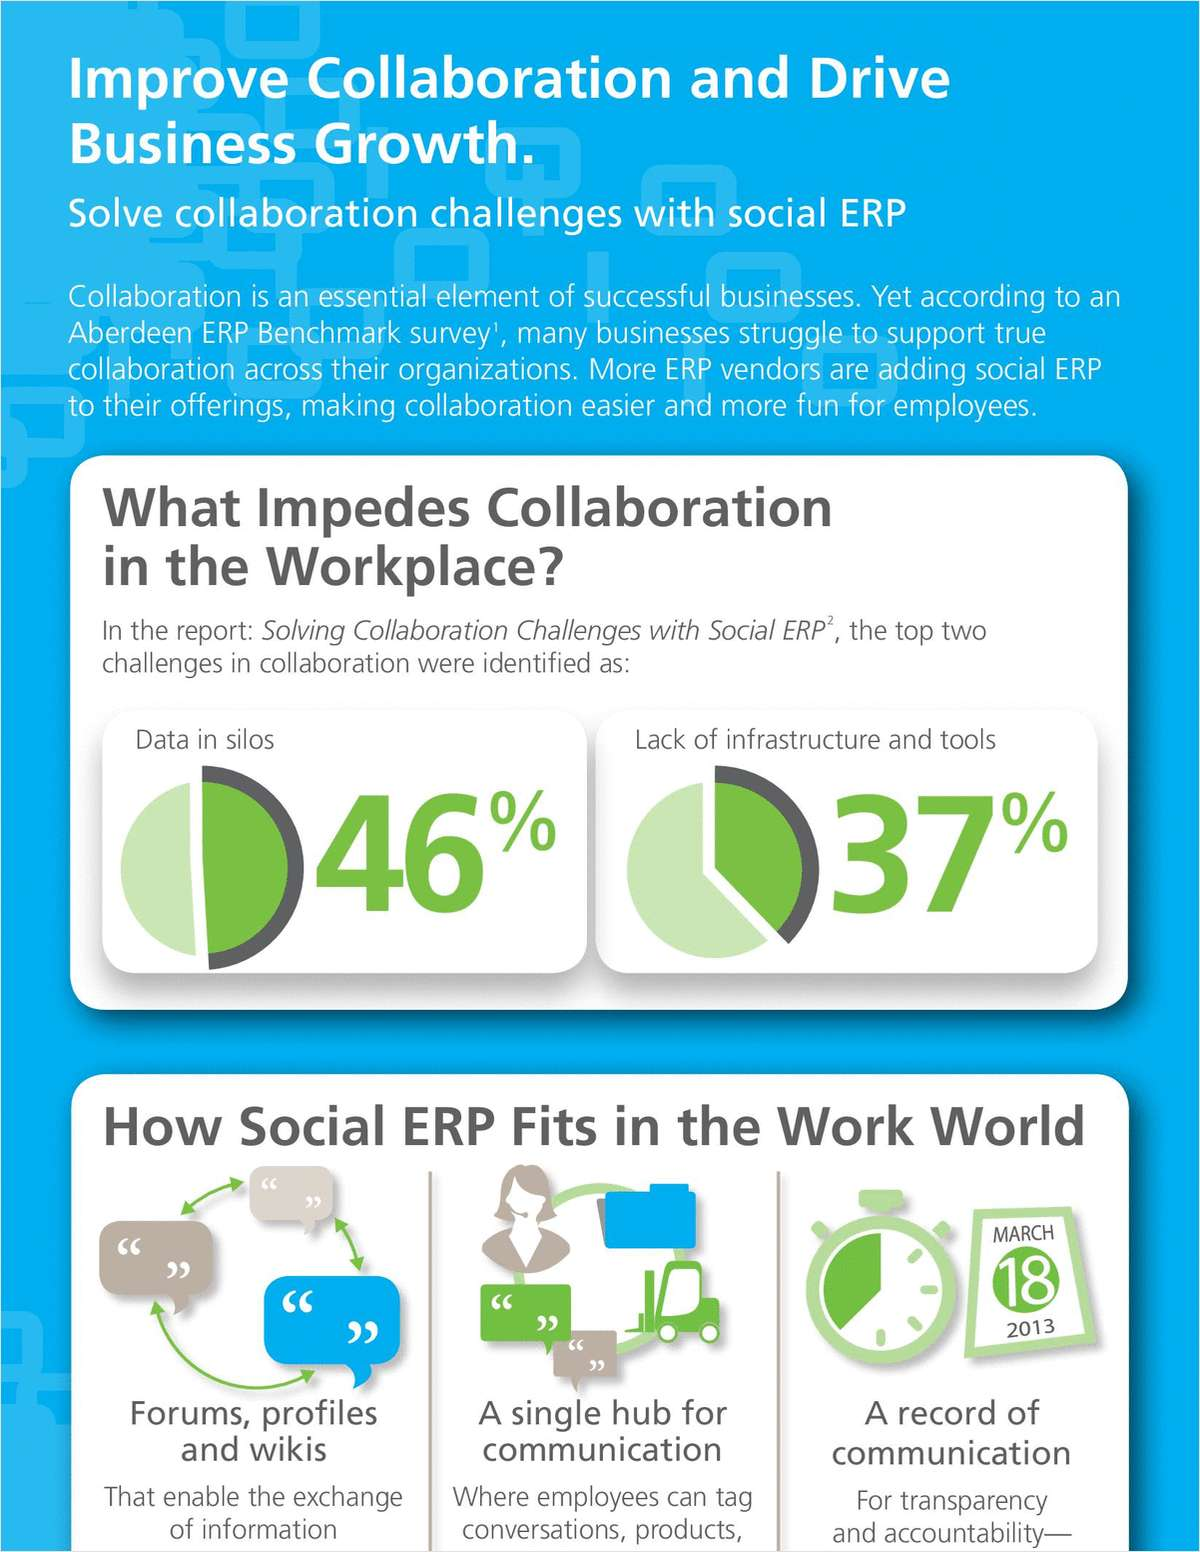 Improve Collaboration and Drive Business Growth